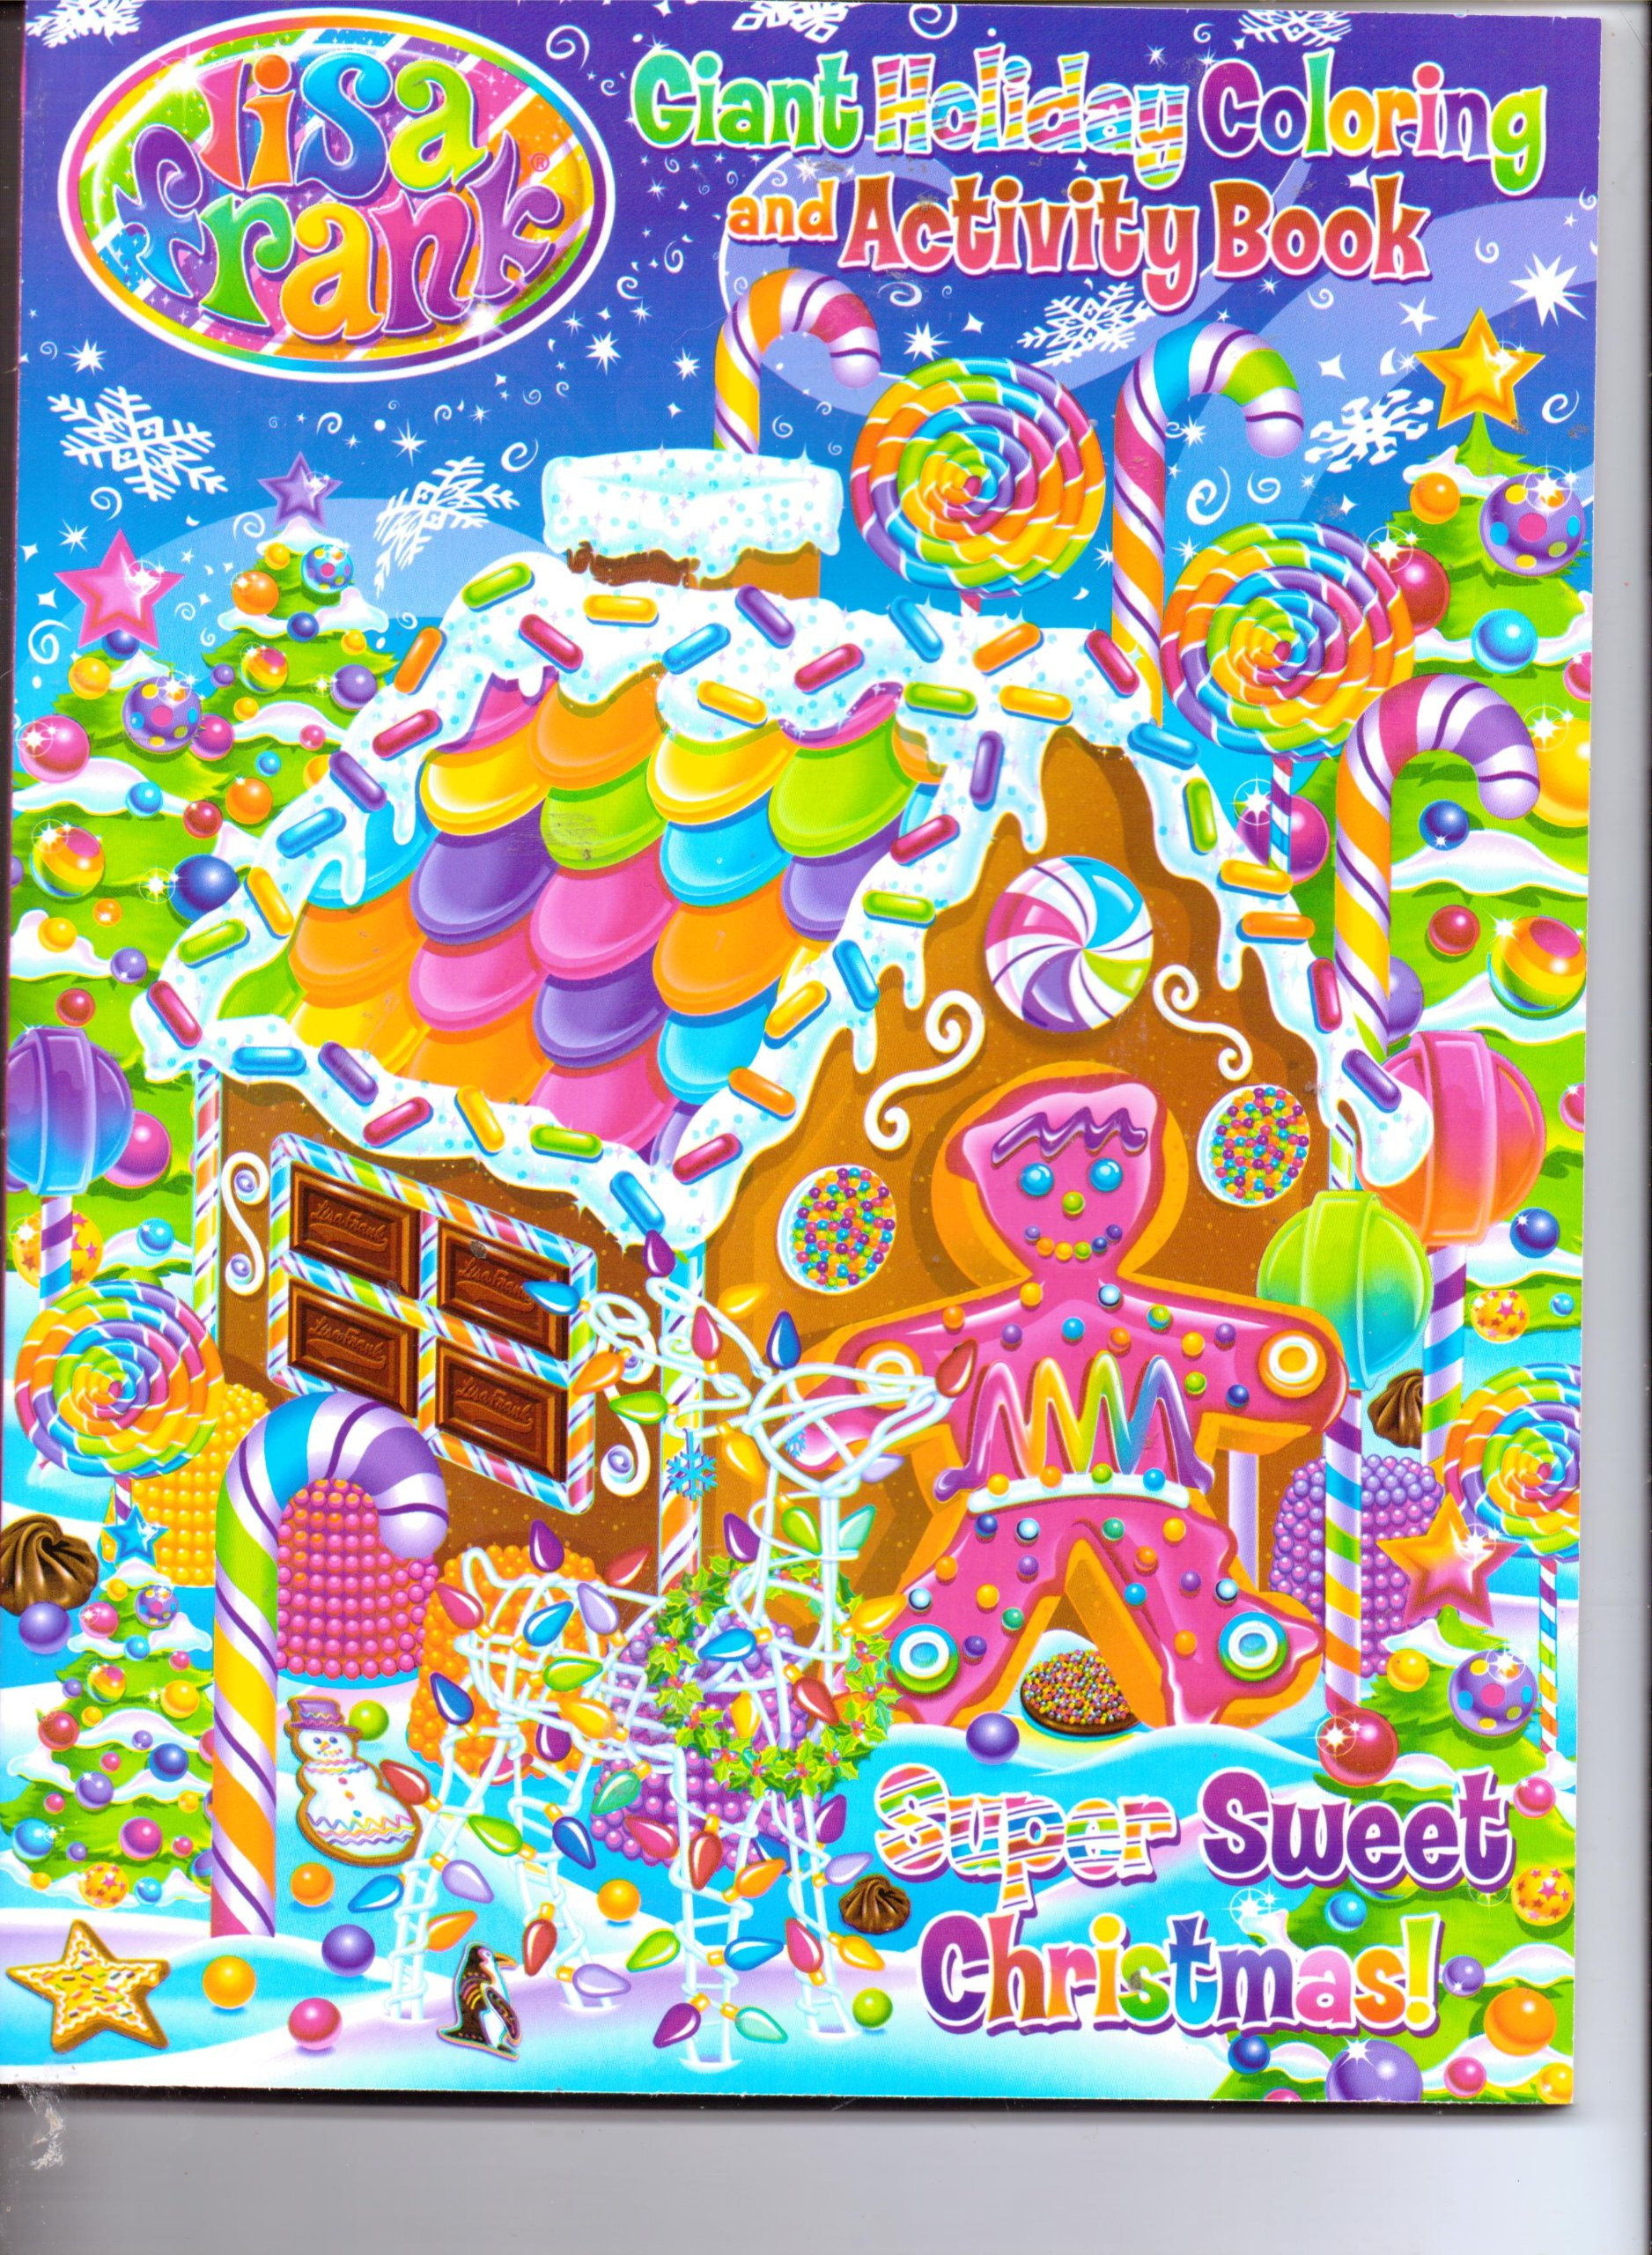 Lisa Frank Christmas Coloring Pages Lisa Frank Giant Holiday